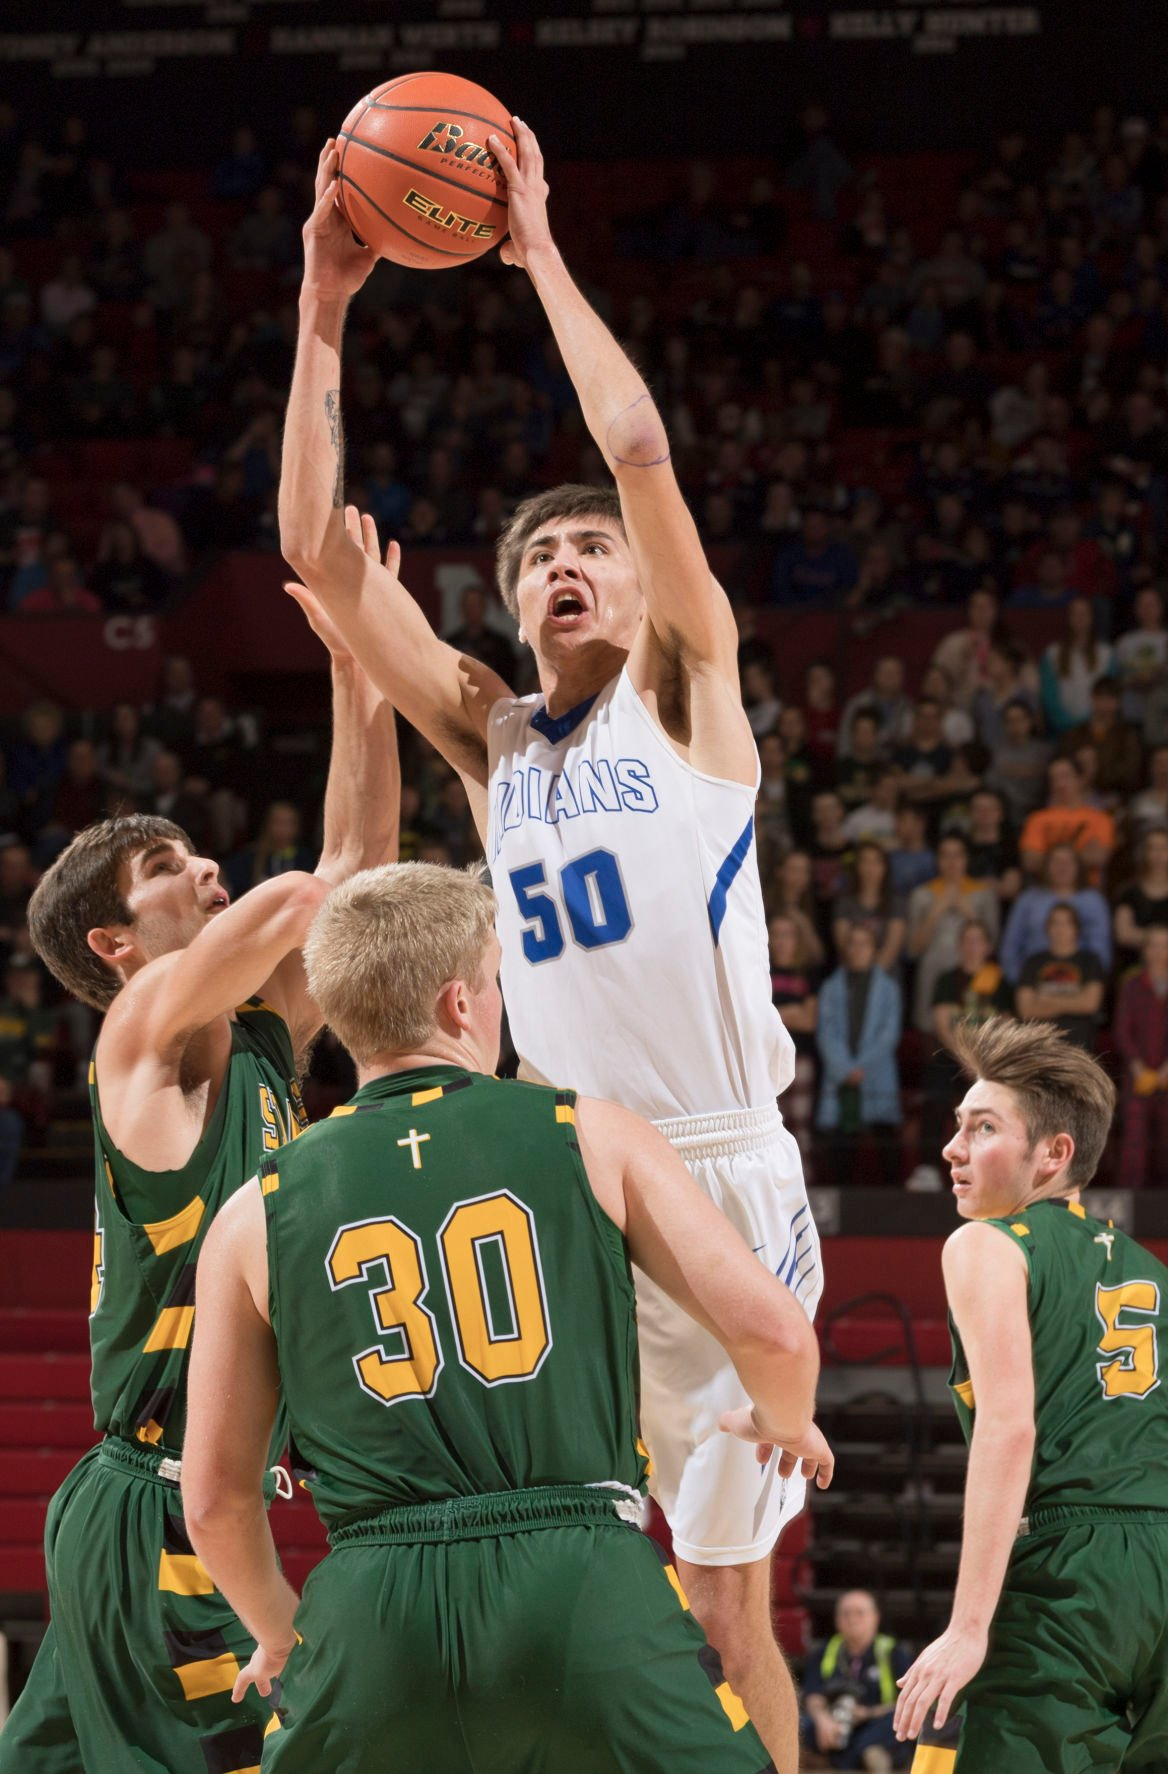 C-1 state, Kearney Catholic vs. Winnebago, 3/9